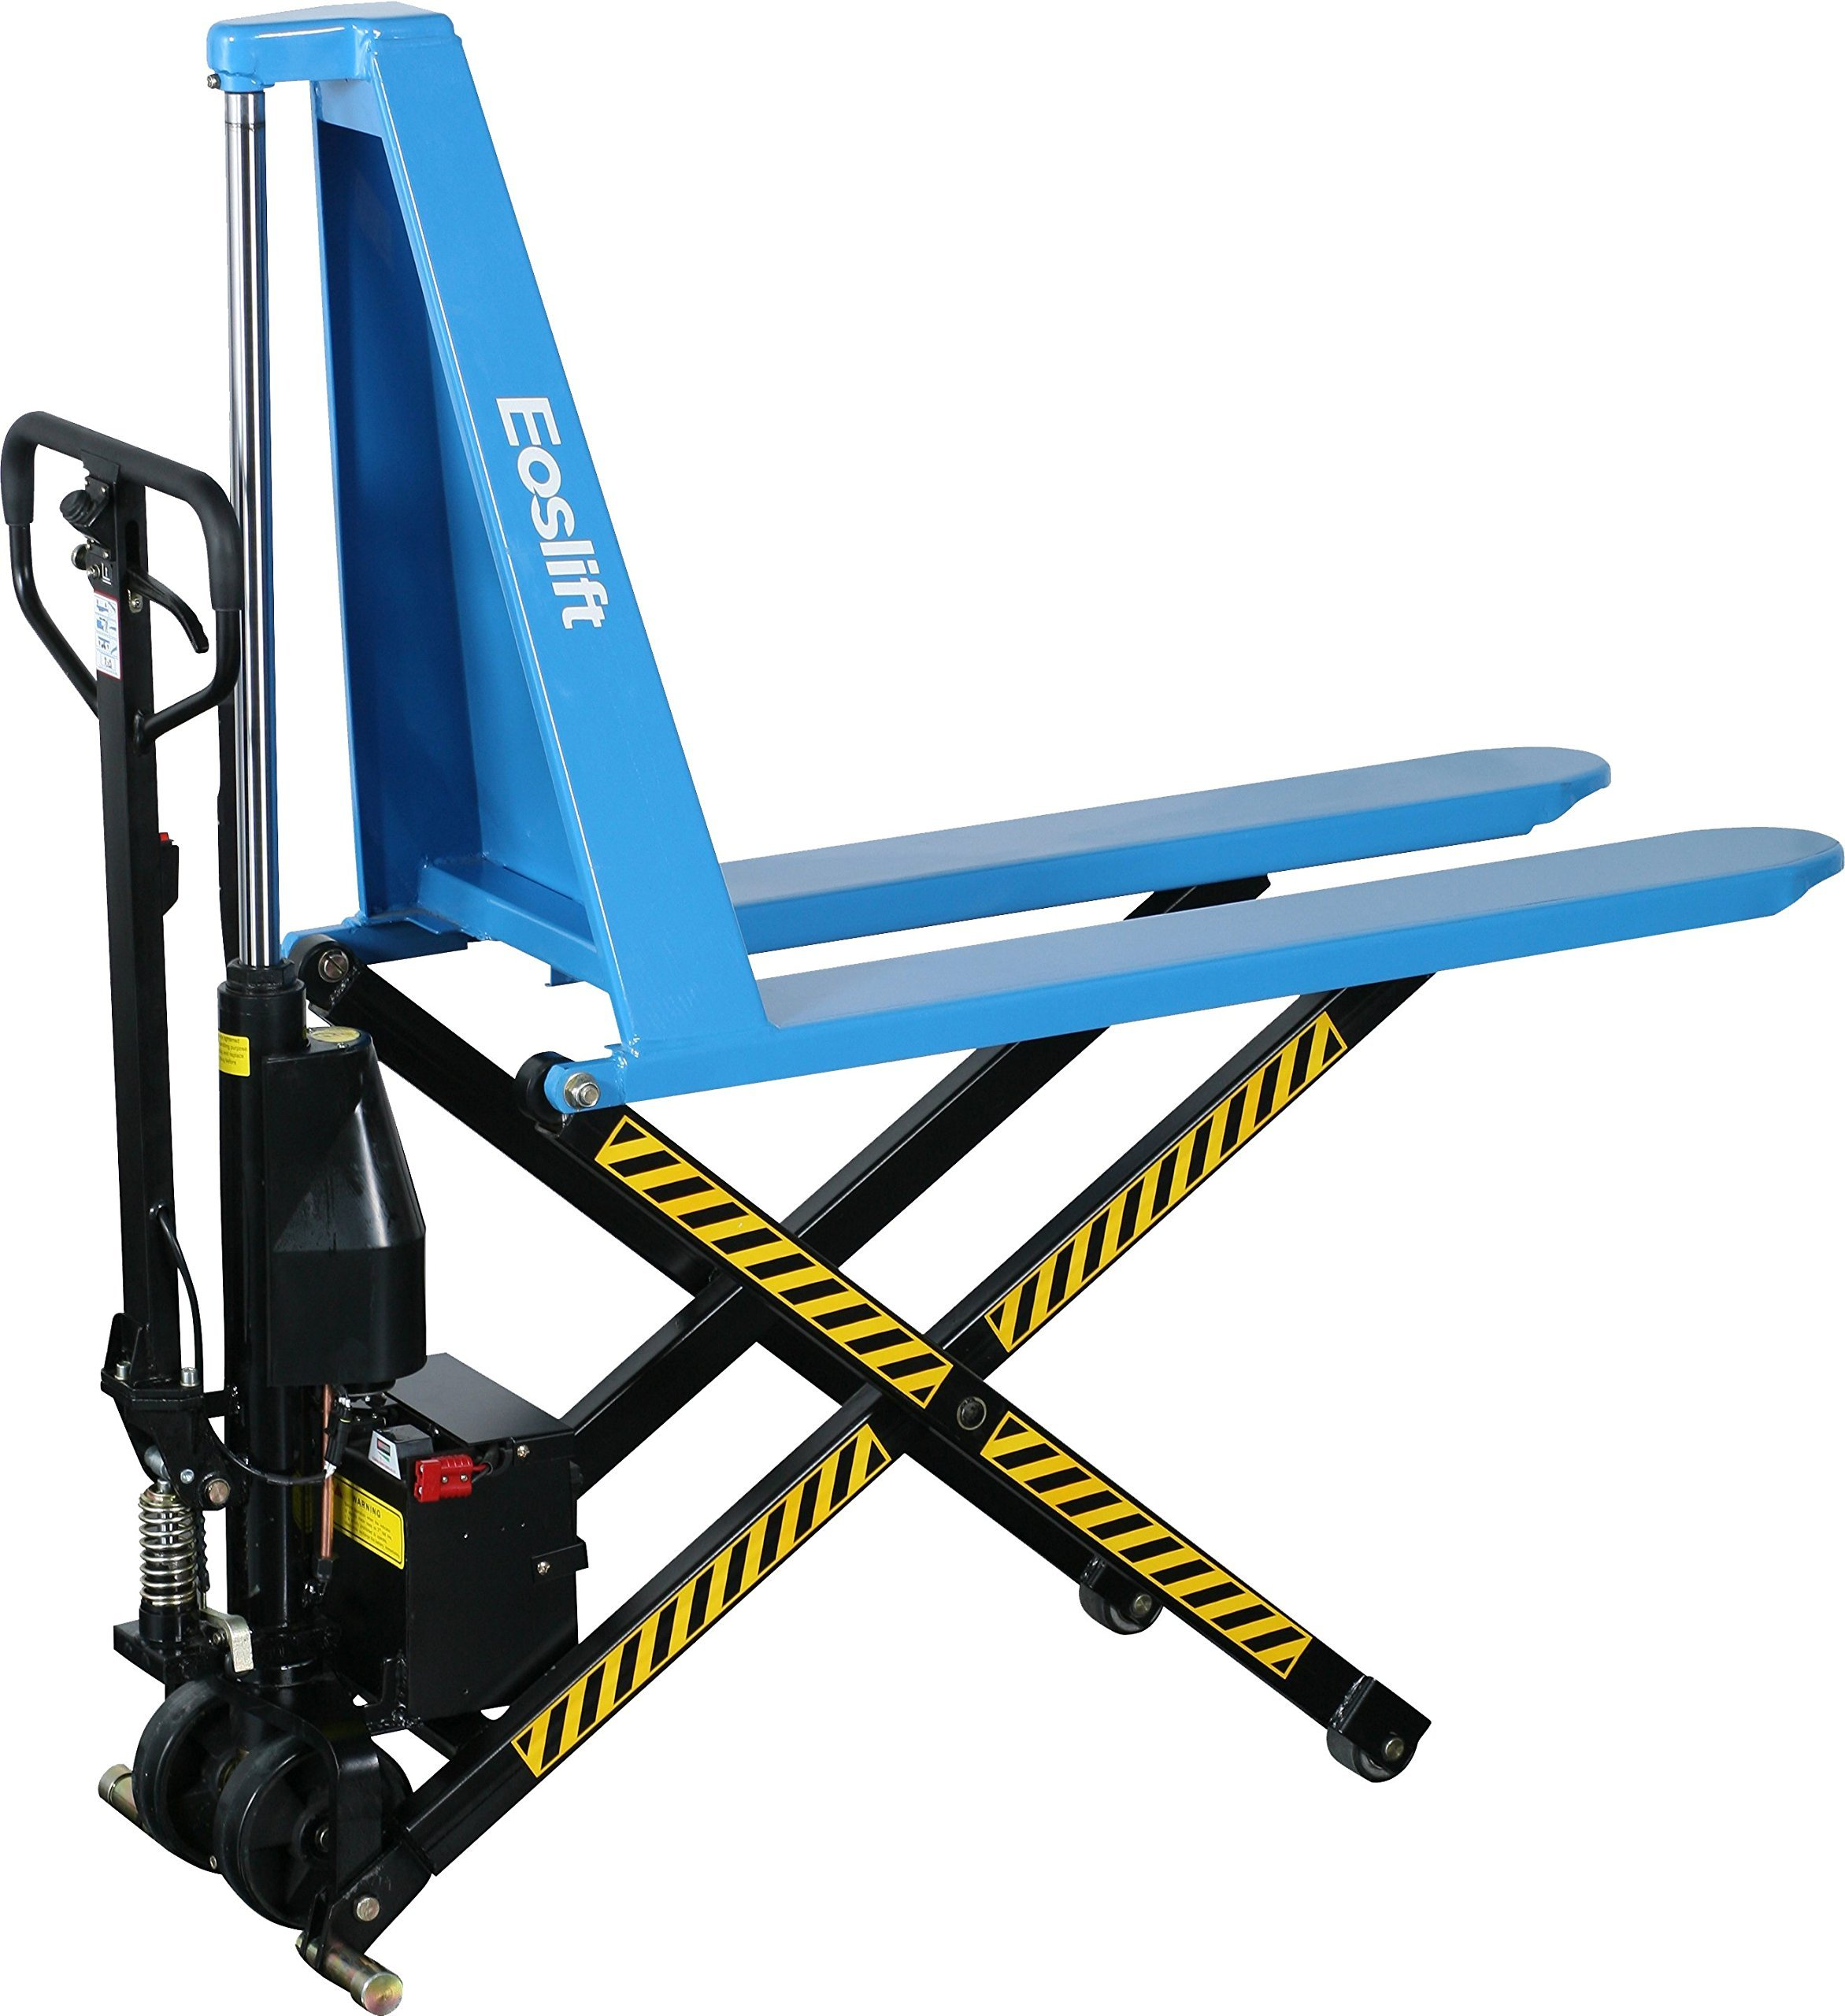 Eoslift I10E Electric Scissor High Lift Pallet Jack Truck, 2200 lb. by Eoslift